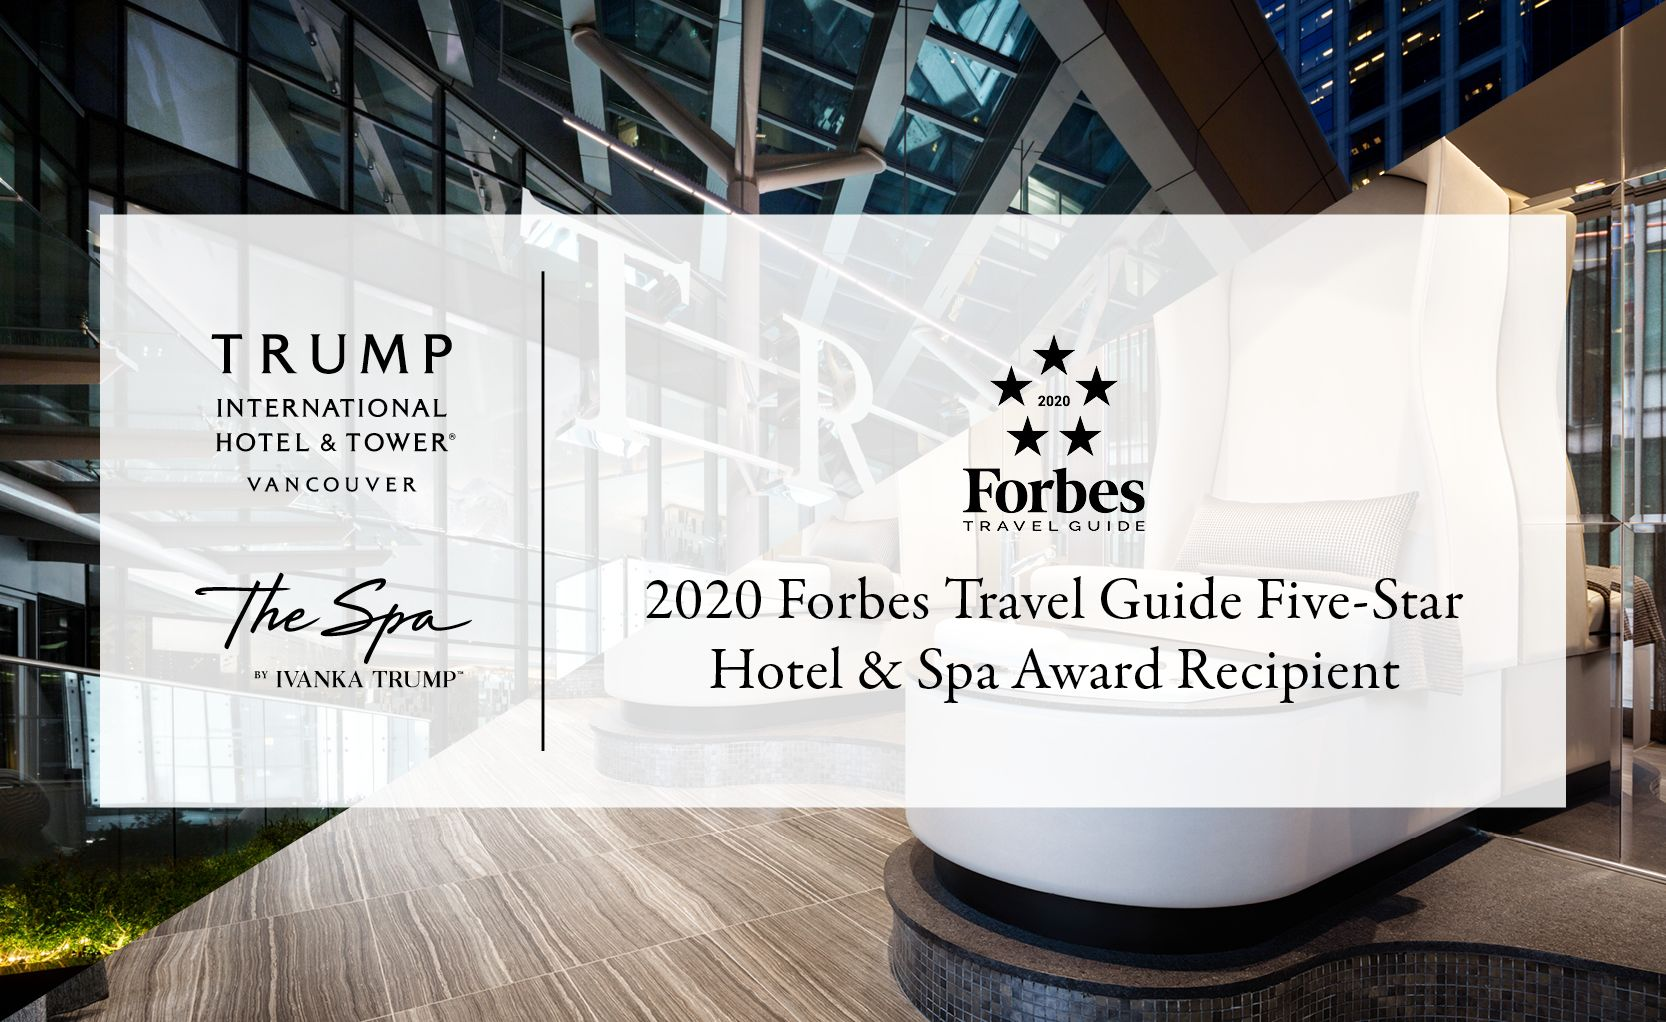 Vancouver The Spa by Ivanka Trump Forbes Ad